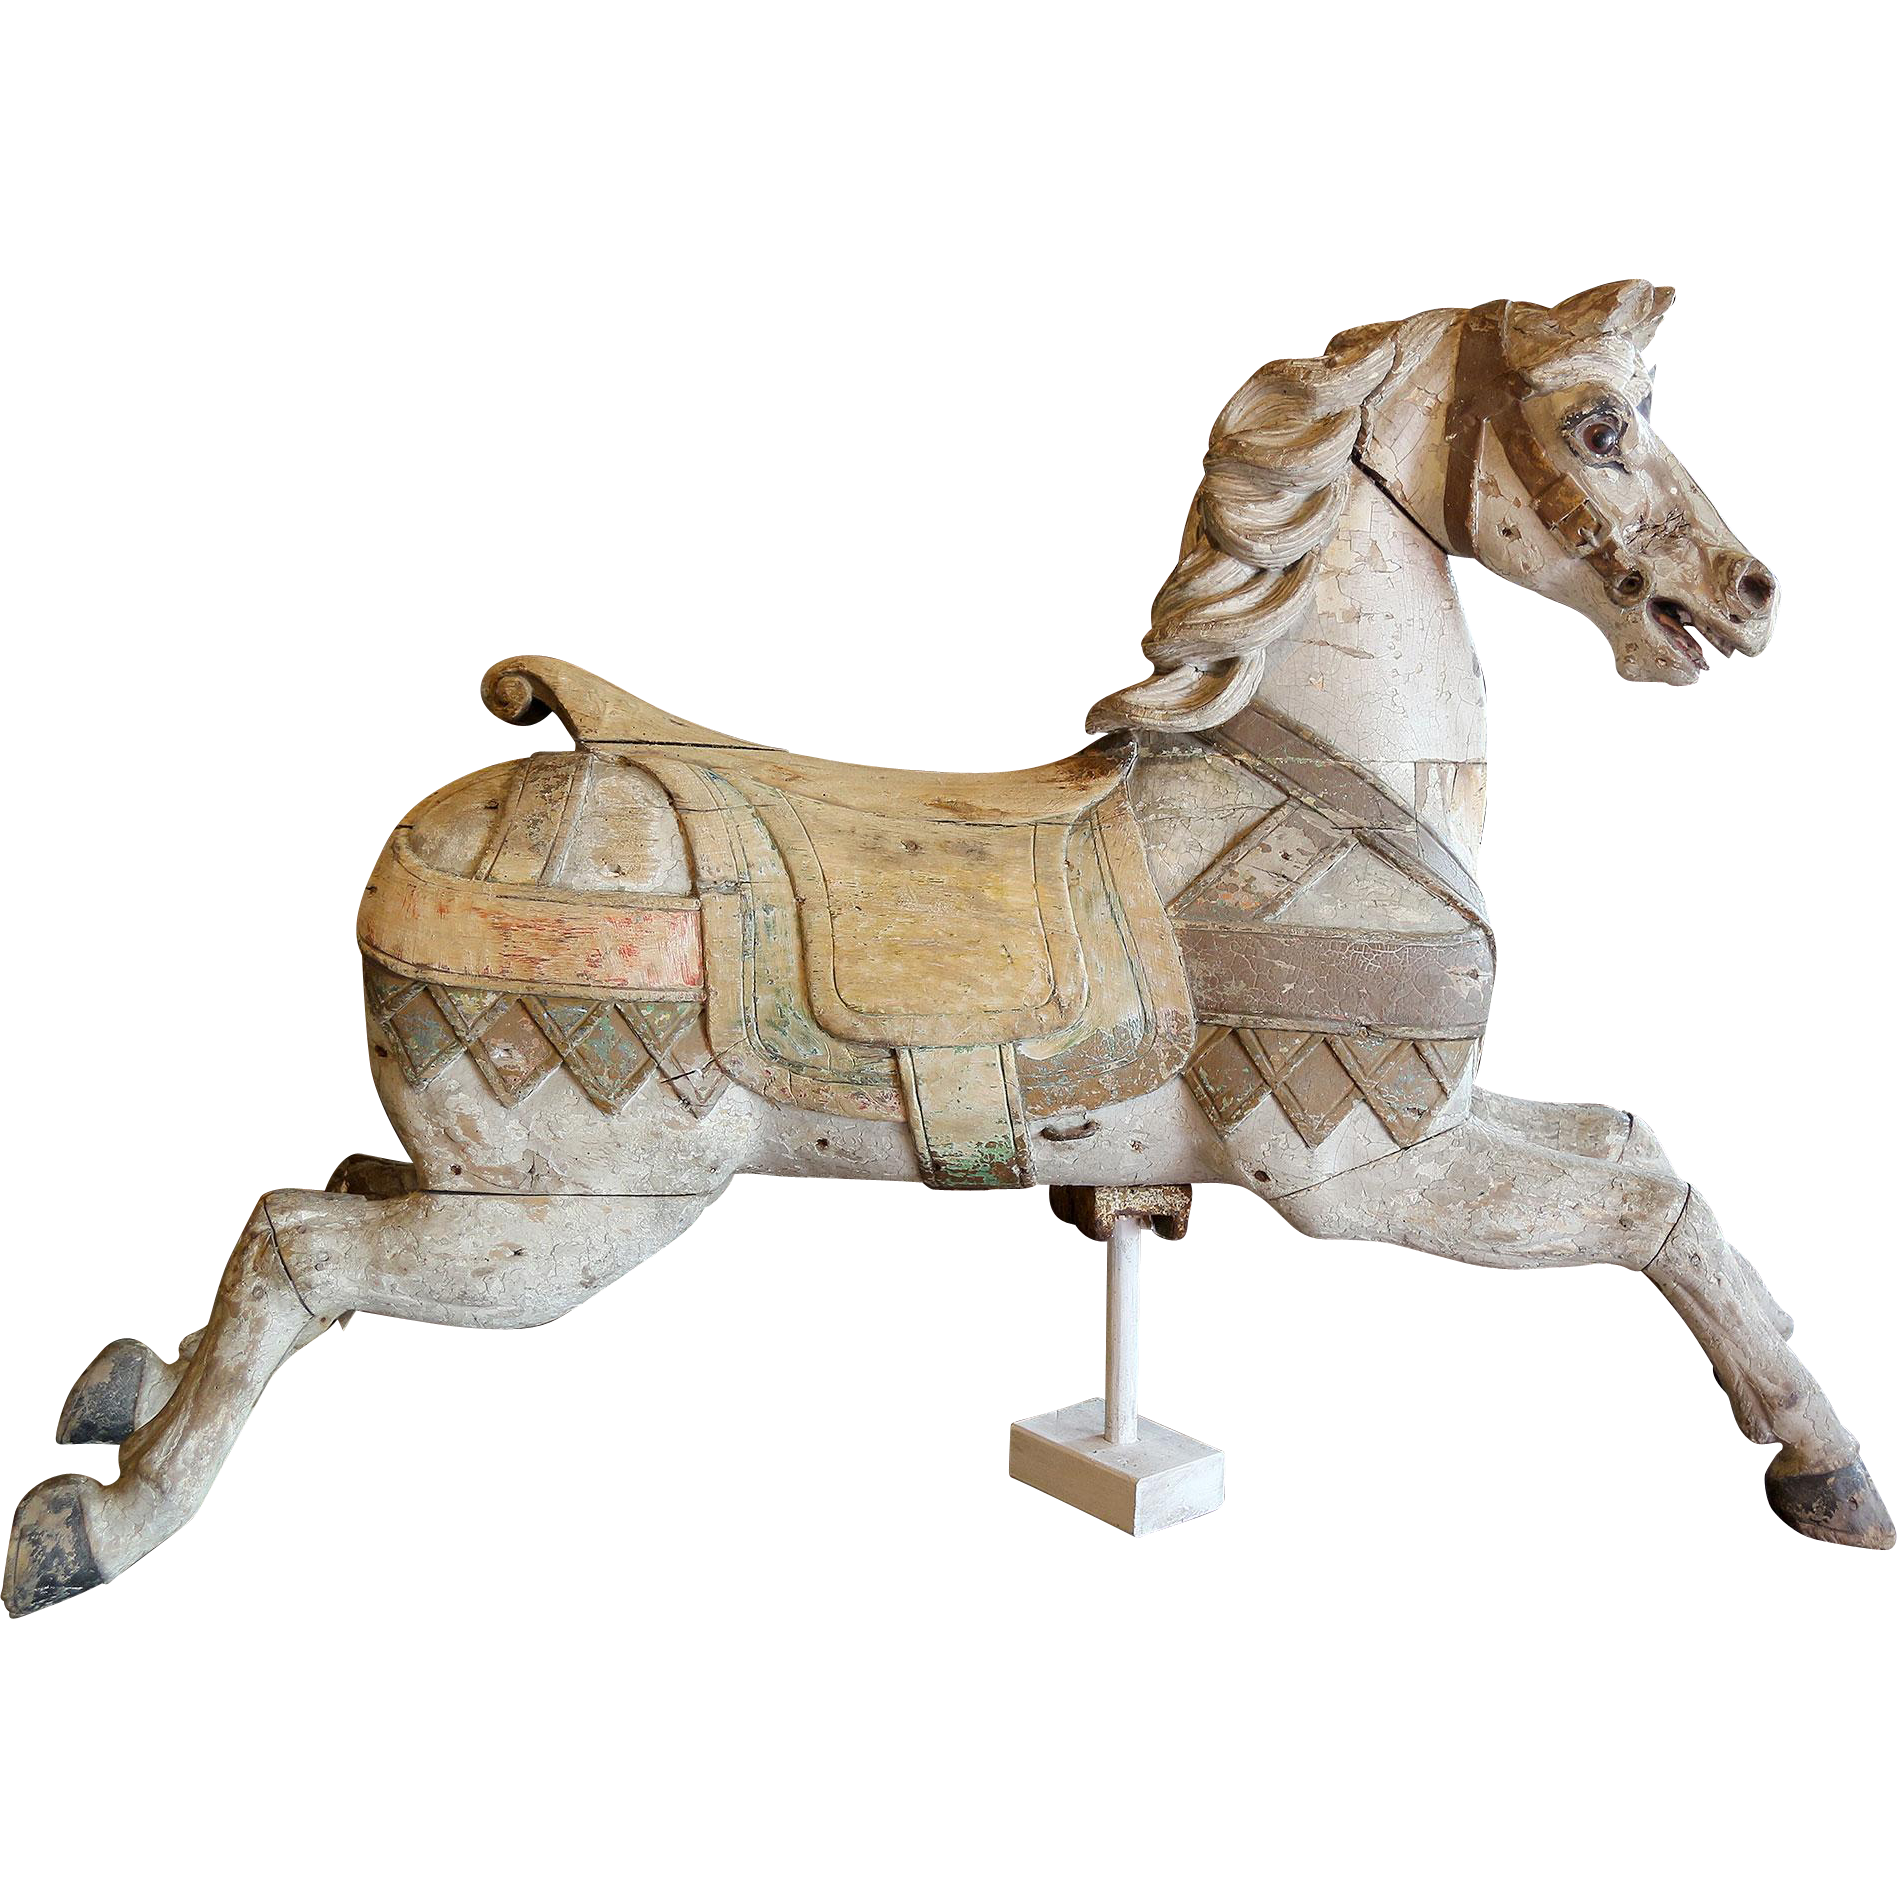 Carved Wood Carousel Horse by Heyn